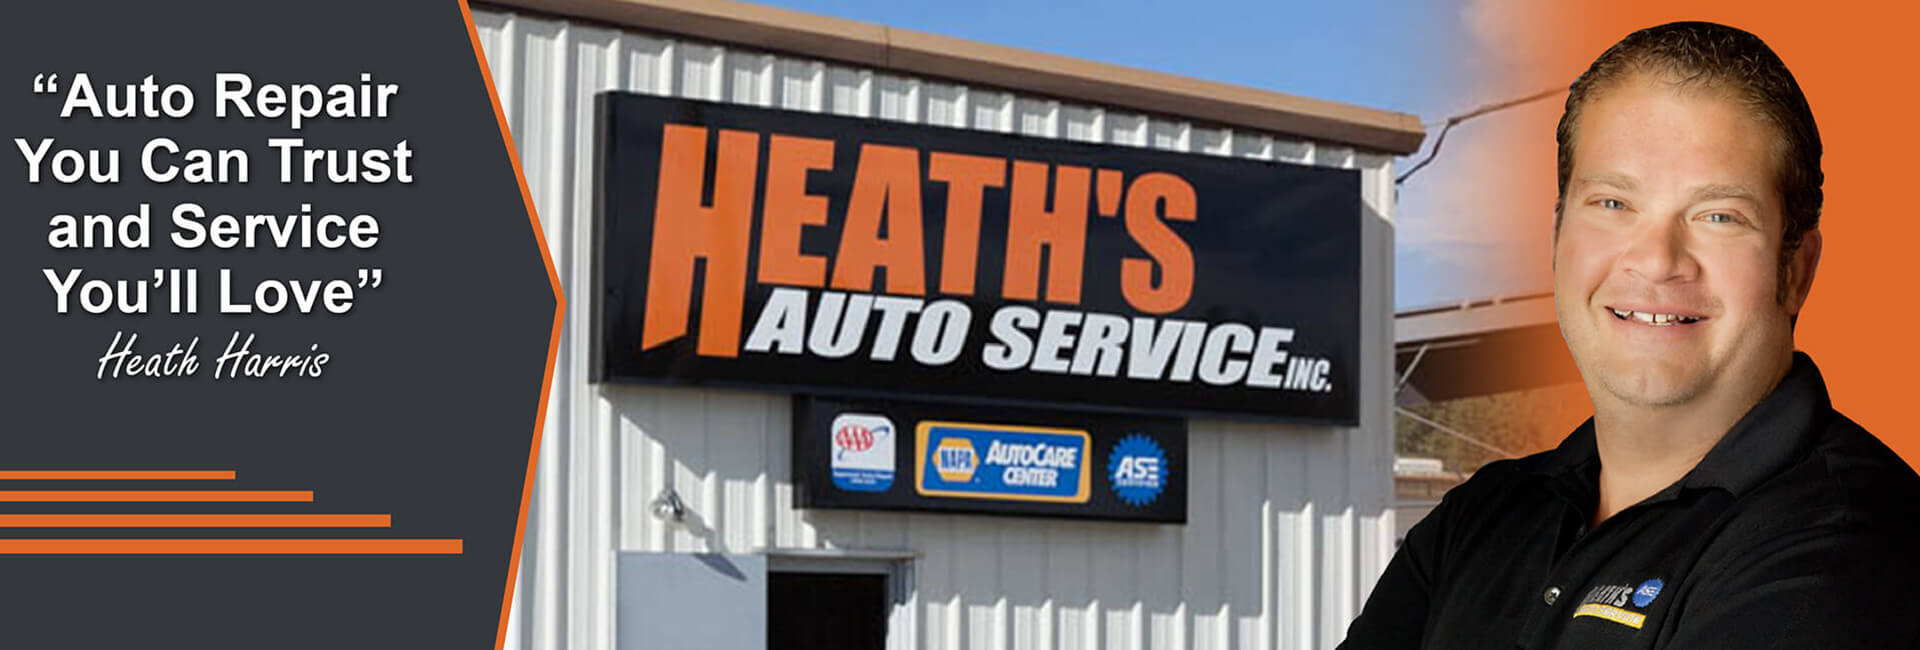 Auto Repair Flagstaff Az Oil Changes Local Car Mechanic Brakes At Electronics Center Inc We Specialize In Industrial 5 Star Rated